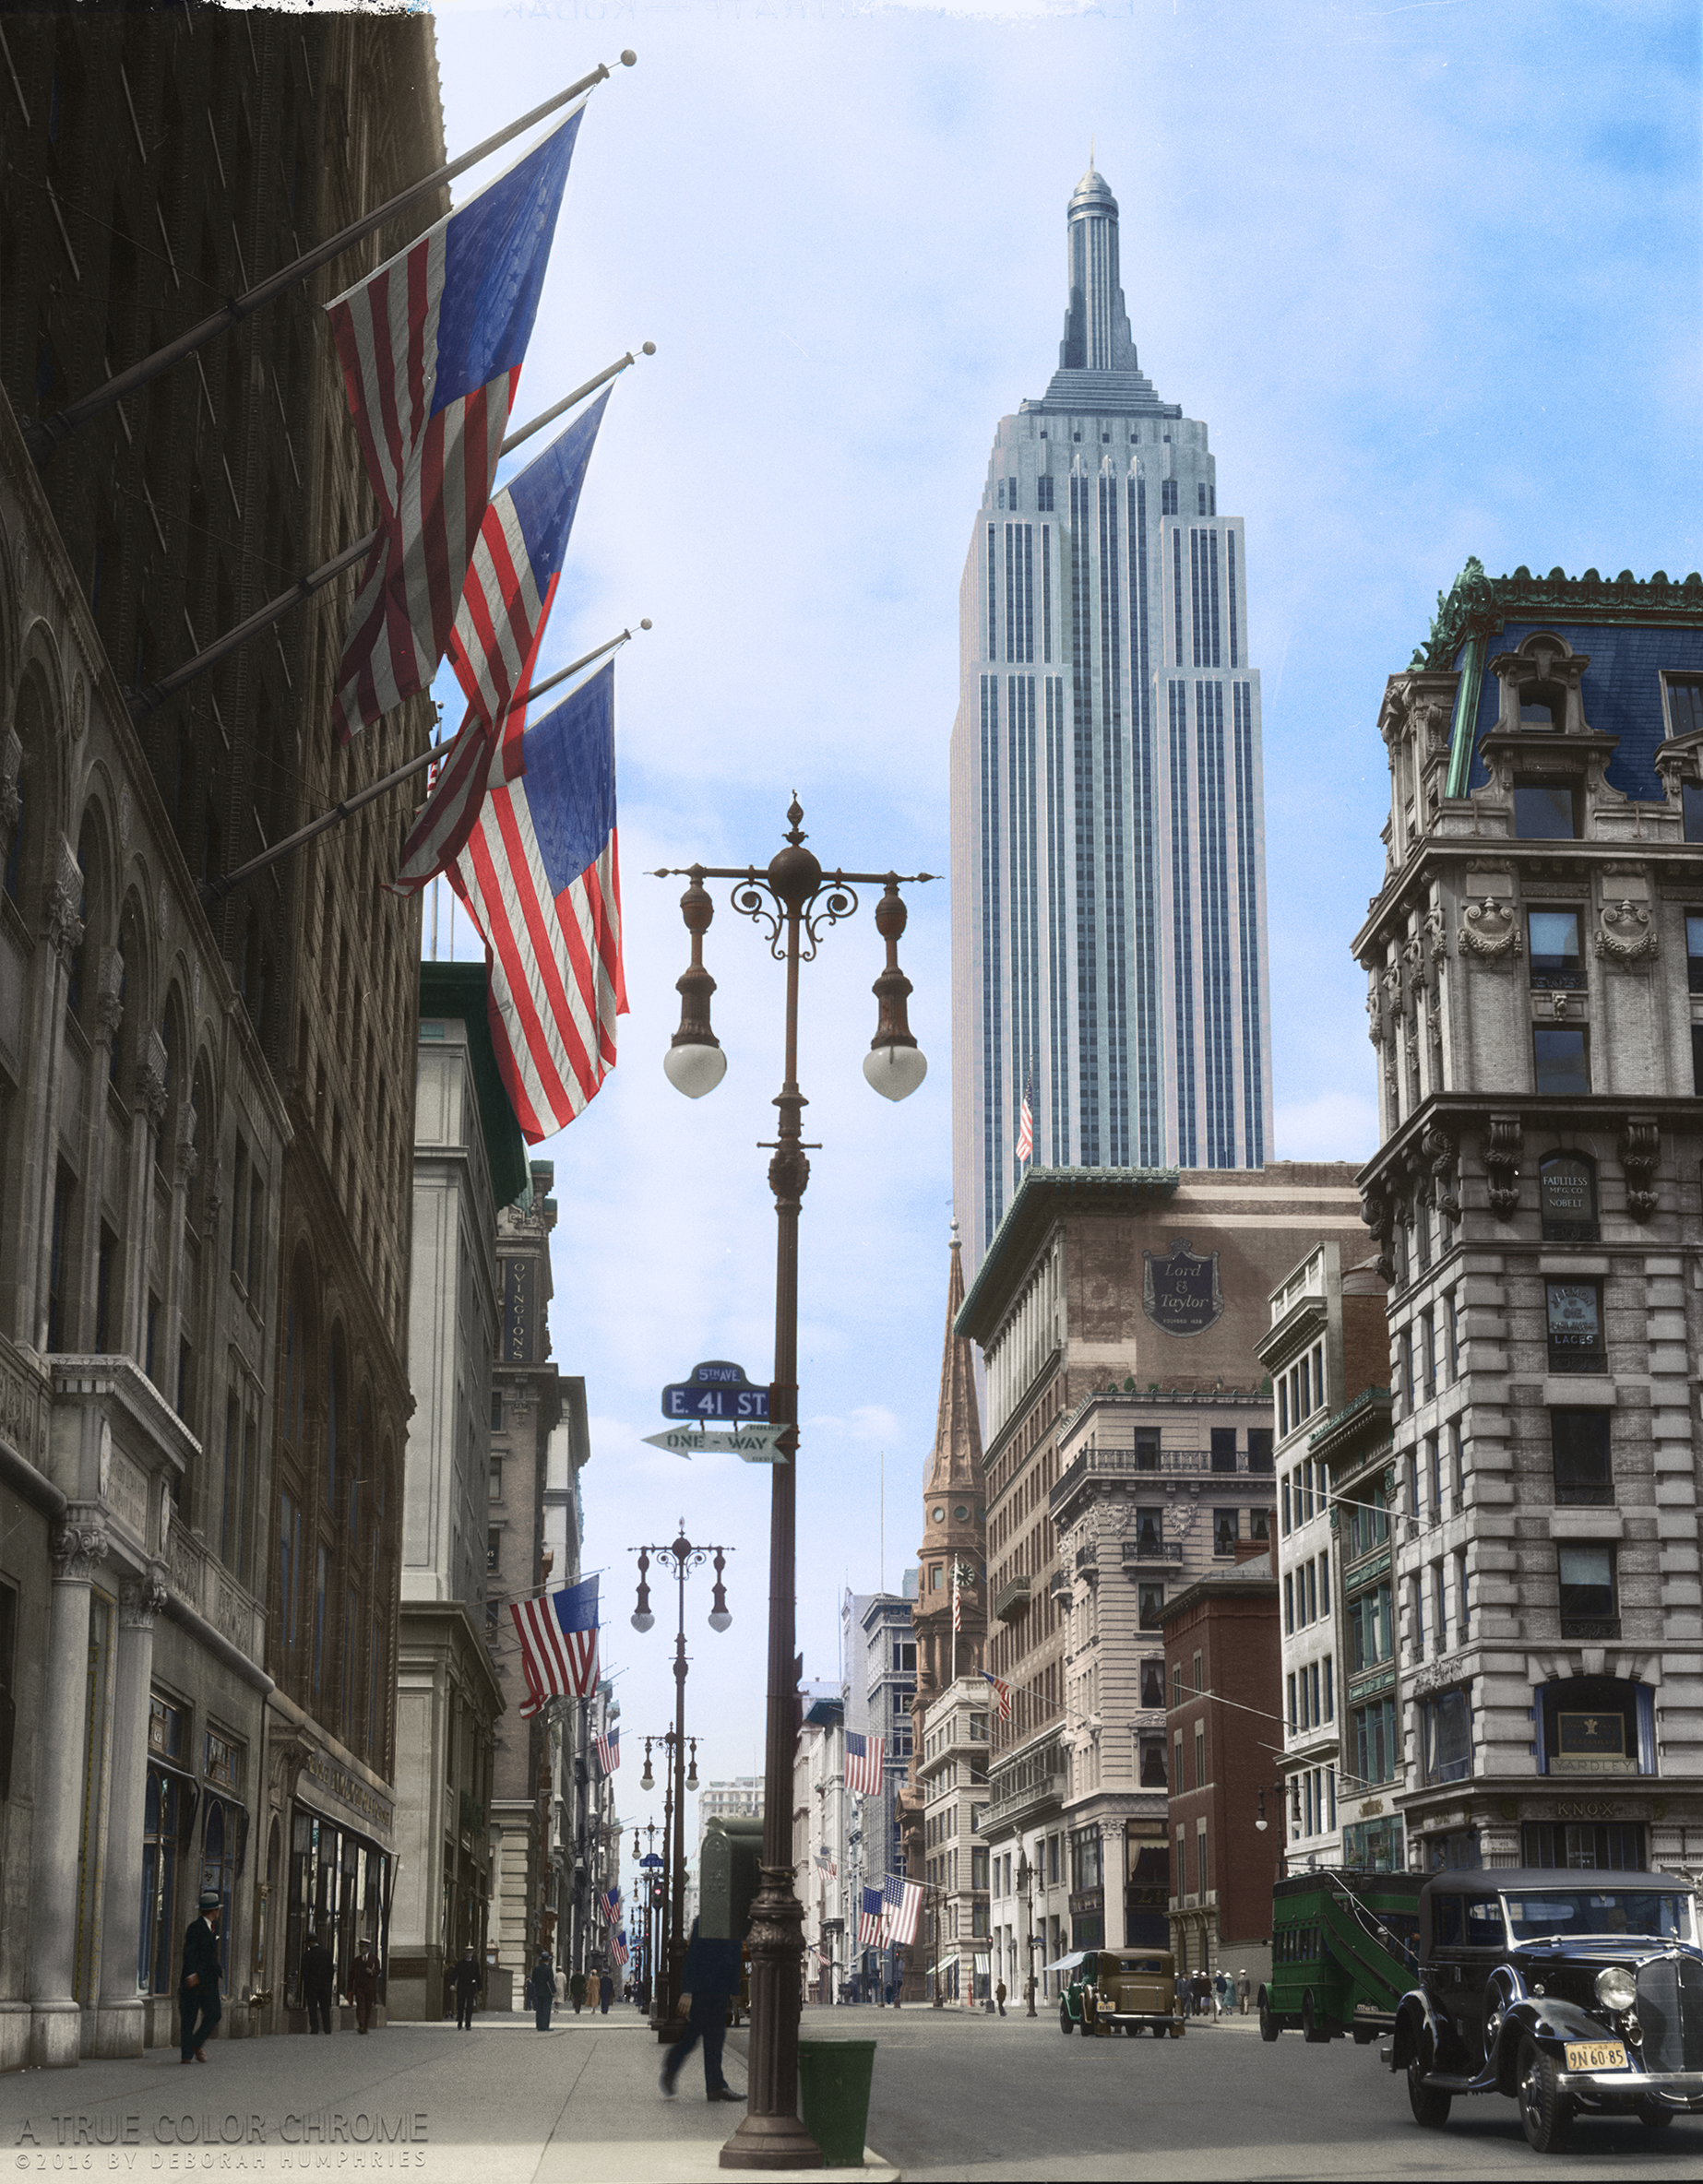 Fifth Avenue and NYC